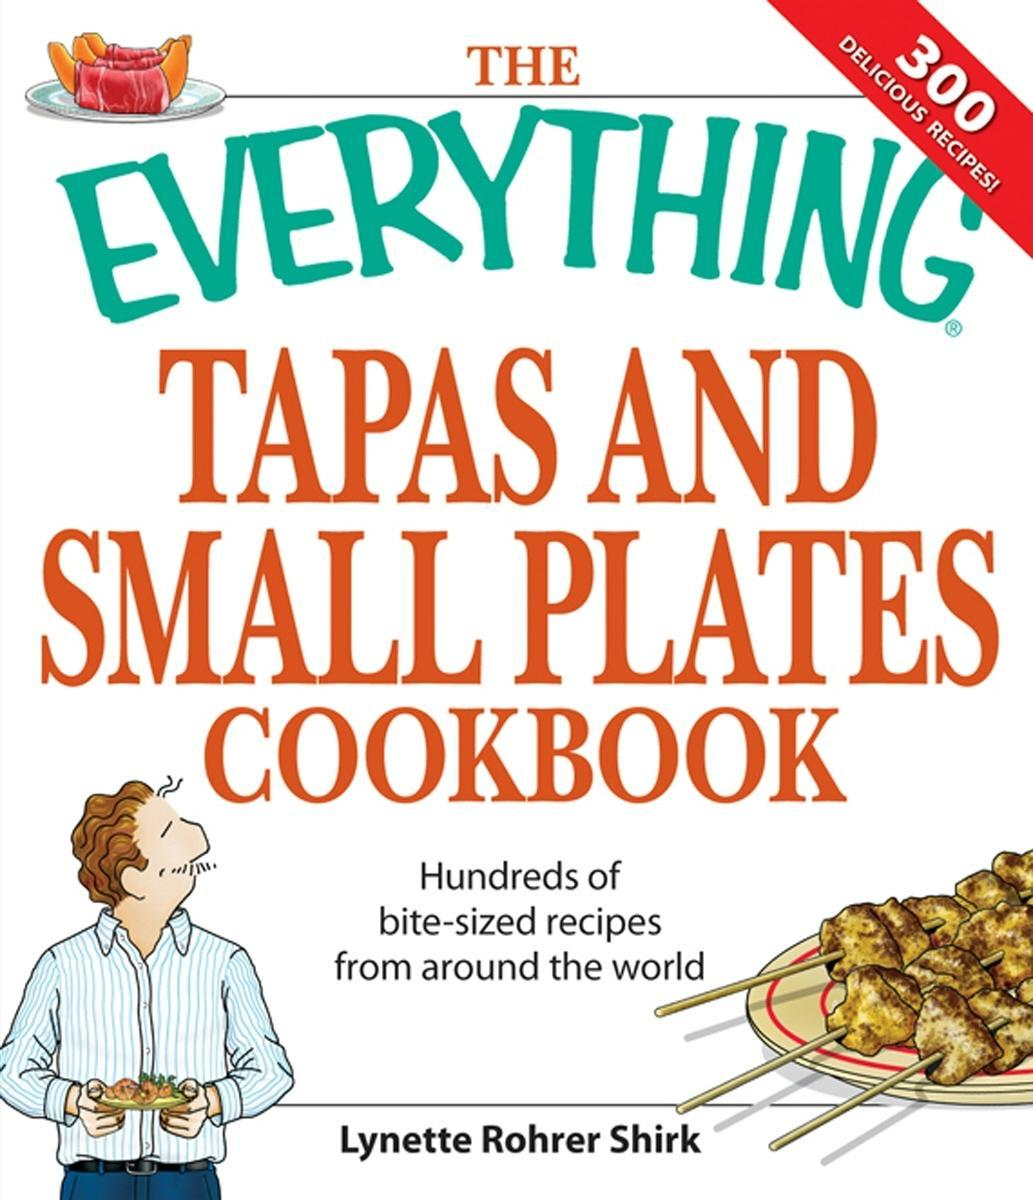 Everything Tapas and Small Plates Cookbook